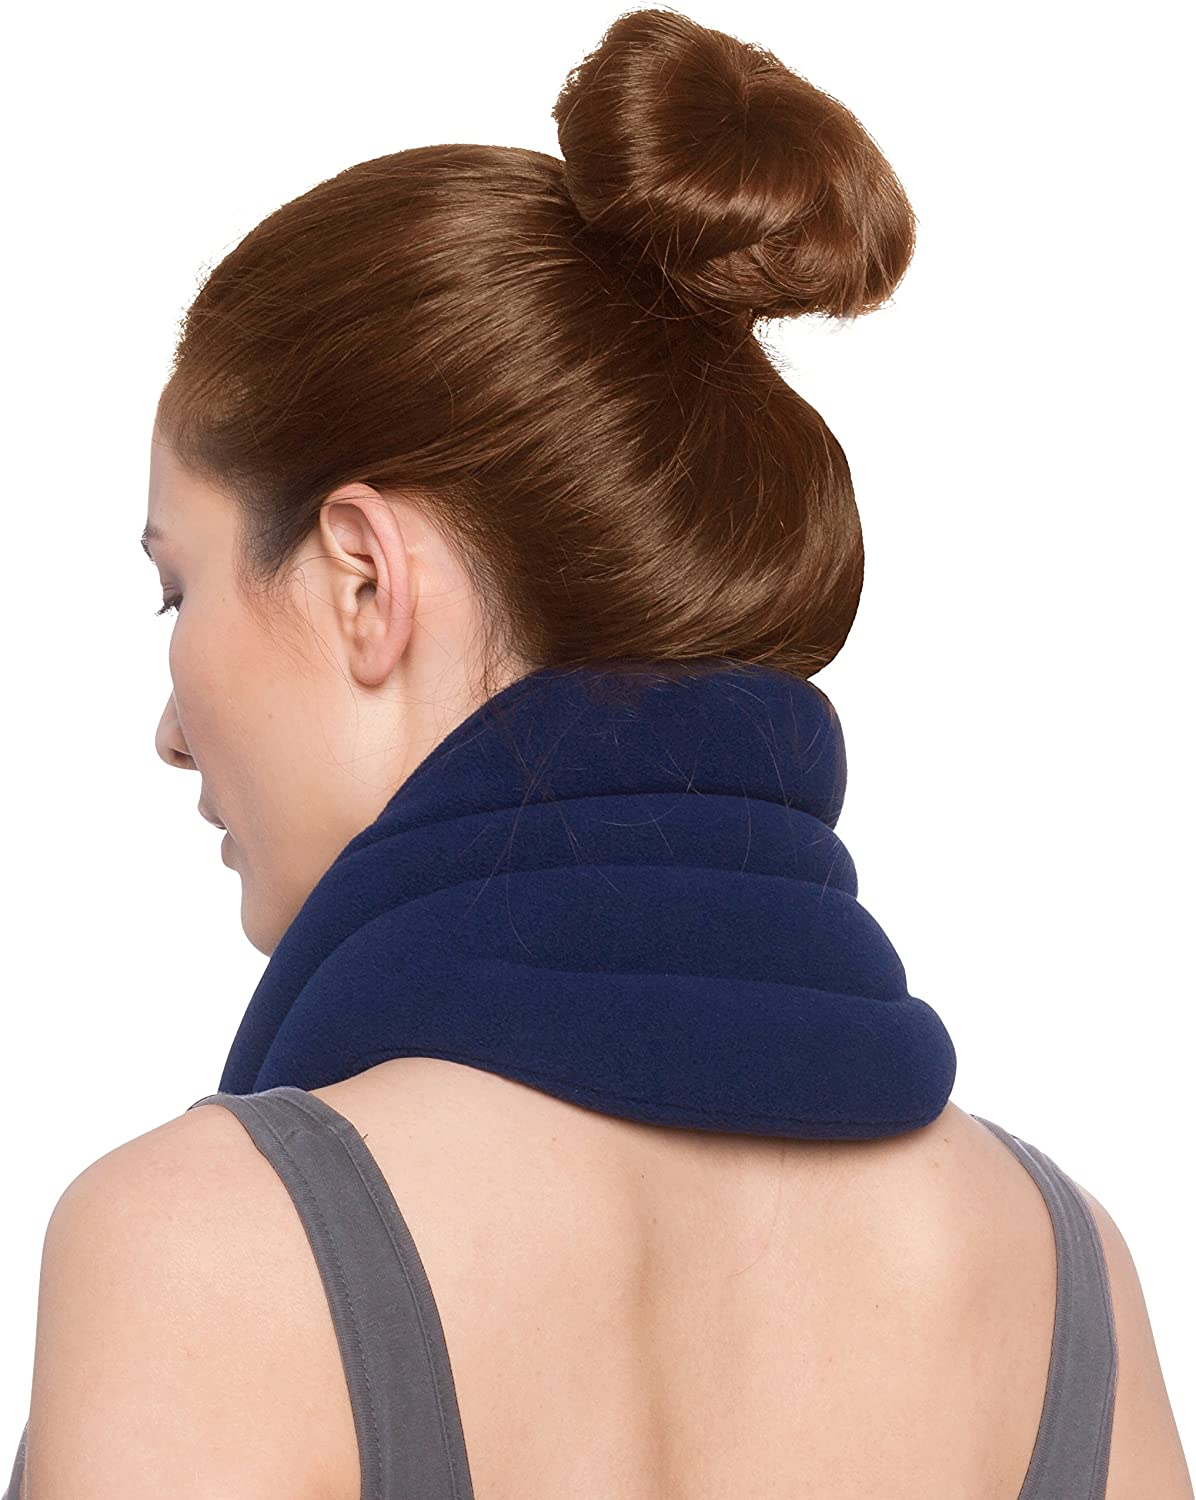 Sunny Bay Hands-Free Neck Heating Wrap: Microwavable Thermal Hot Pack, Heat Therapy Neck Brace for Sore Neck & Shoulder Muscle Pain Relief - Personal, Reusable, Blue